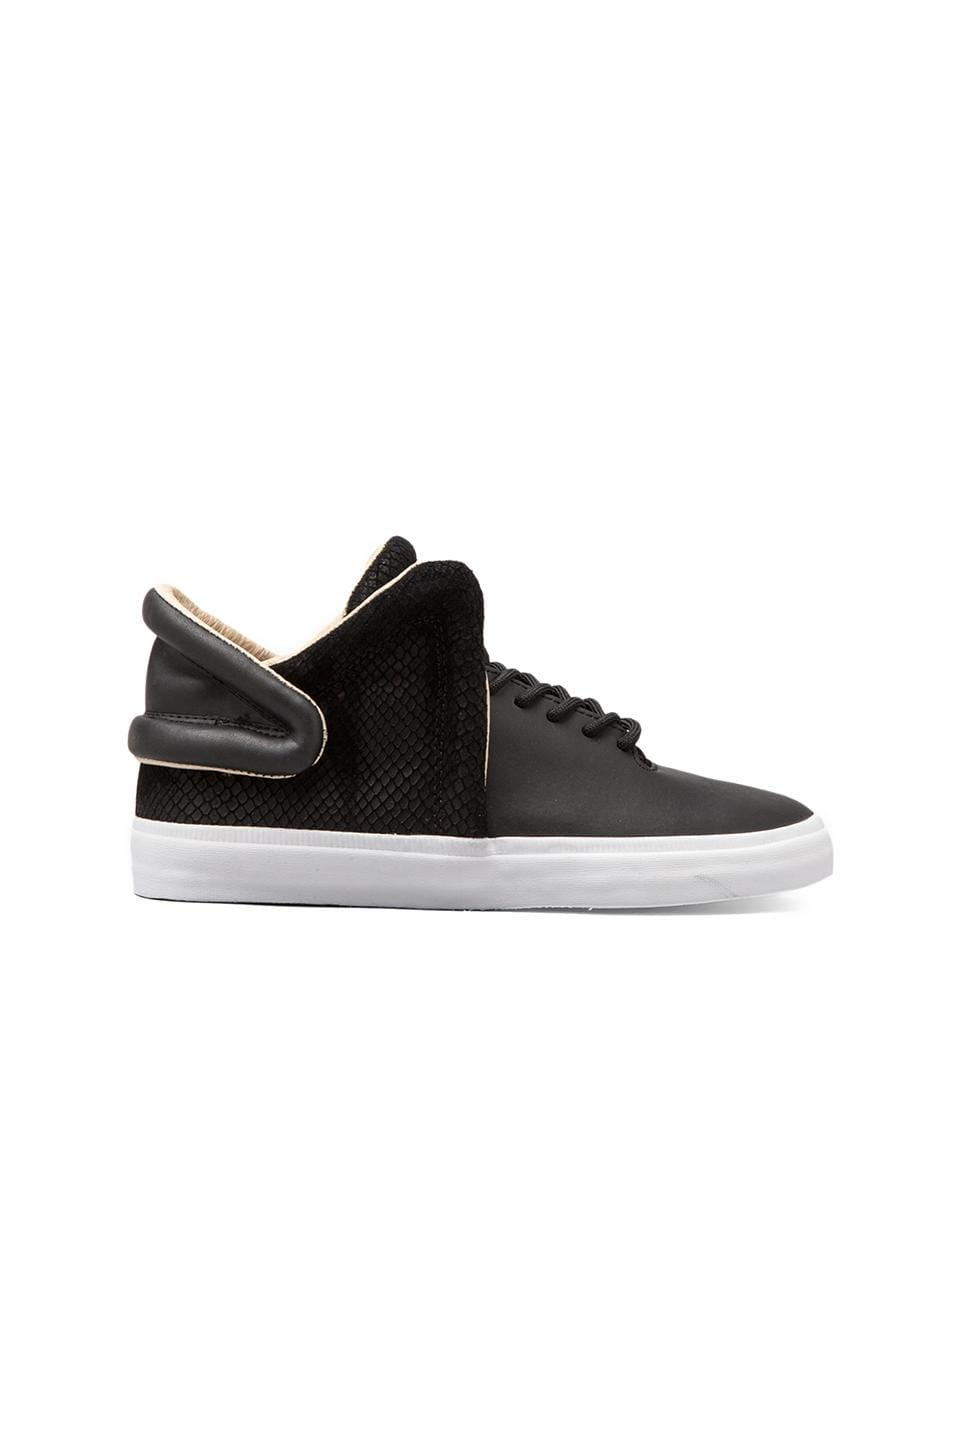 Supra Falcon Leather in Black Snake